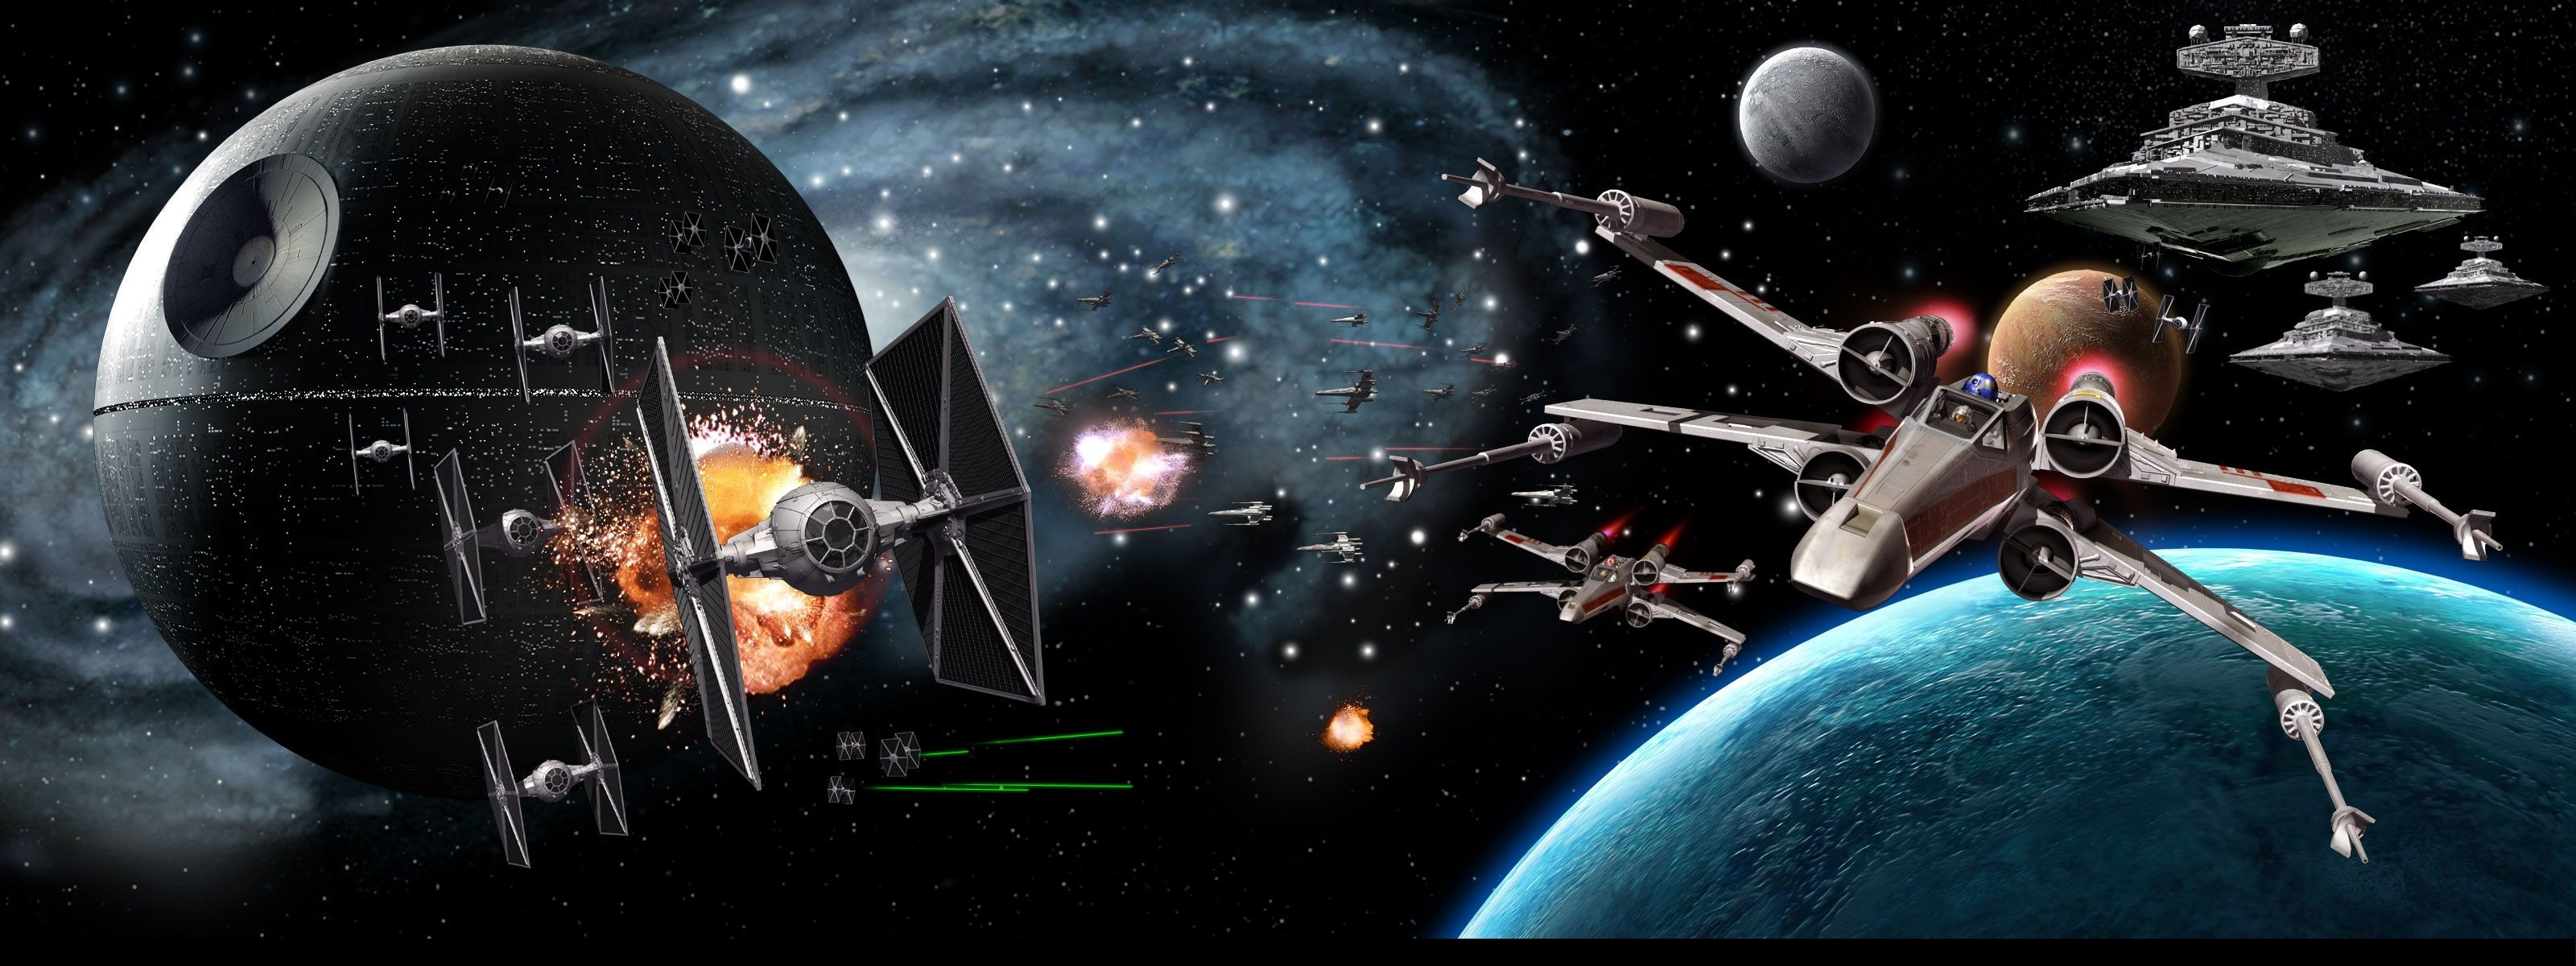 Triple Monitor Star Wars Png Free Triple Monitor Star Wars Png Transparent Images 57616 Pngio